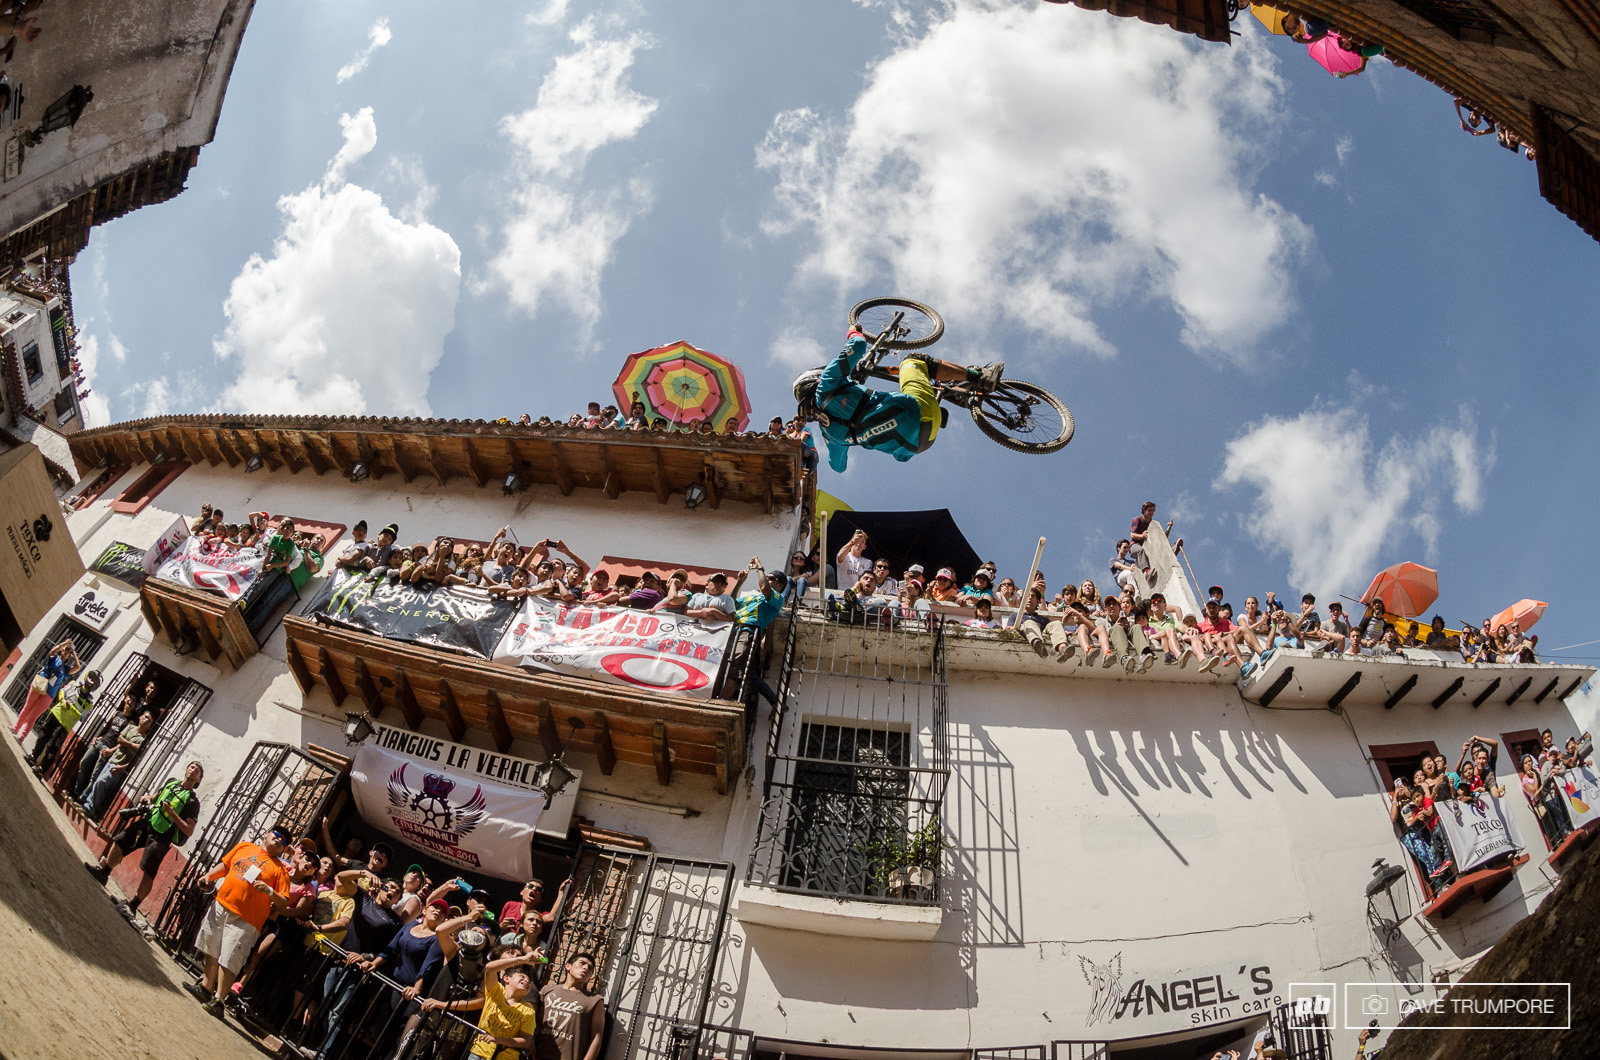 Antoine Bizet won best trick with a massive front flip for the 2ns year in a row.